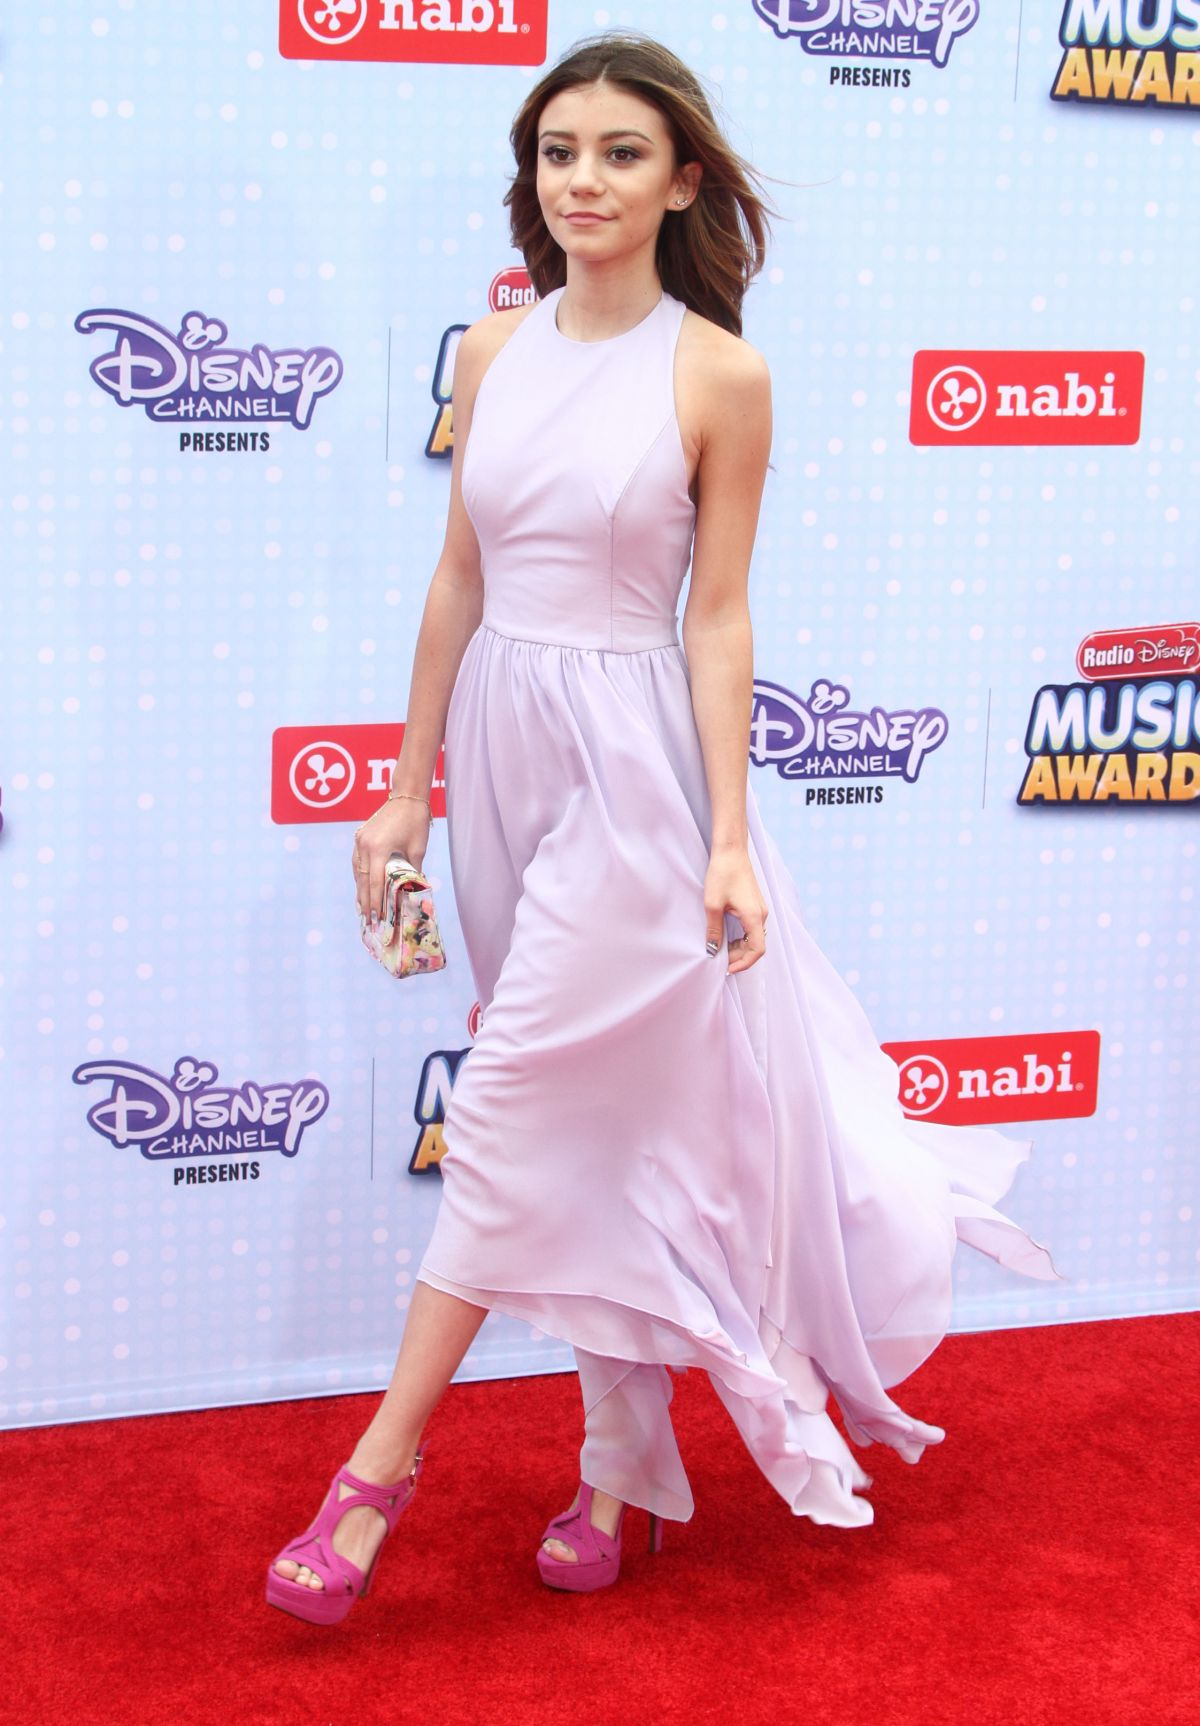 GENEVIEVE HANNELIUS at 2015 Radio Disney Music Awards in Los Angeles